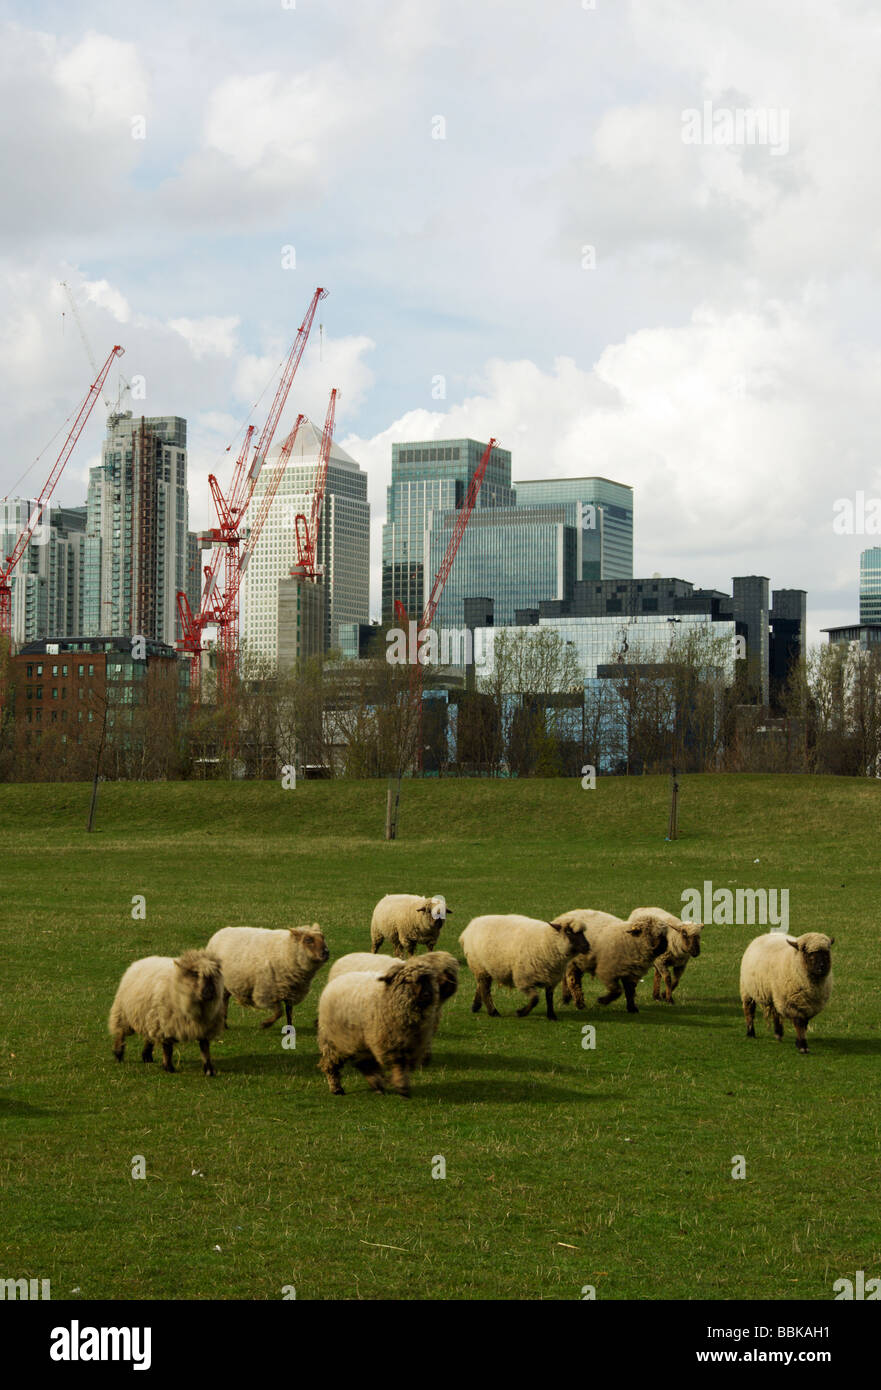 A group of sheep with financial centre Canary Wharf in the background - Stock Image